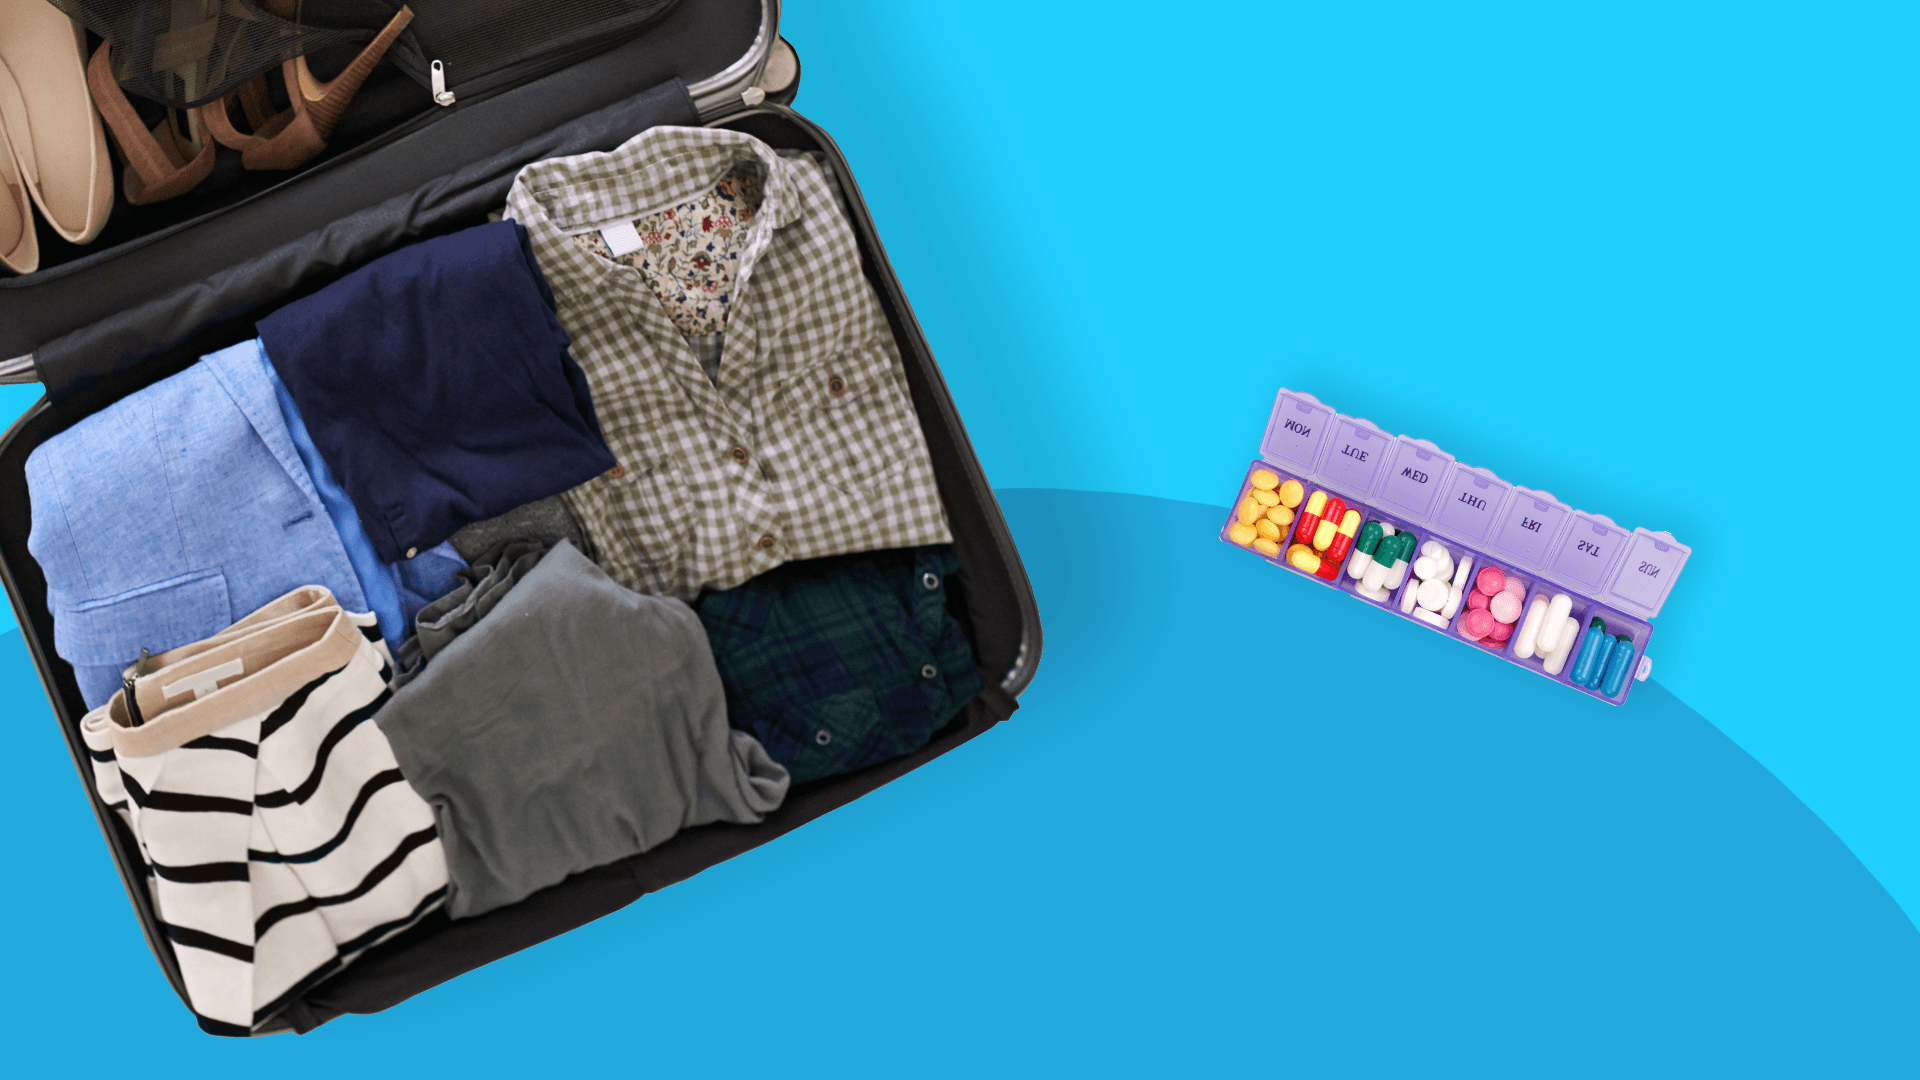 Planning a trip? Make sure to complete this medication checklist